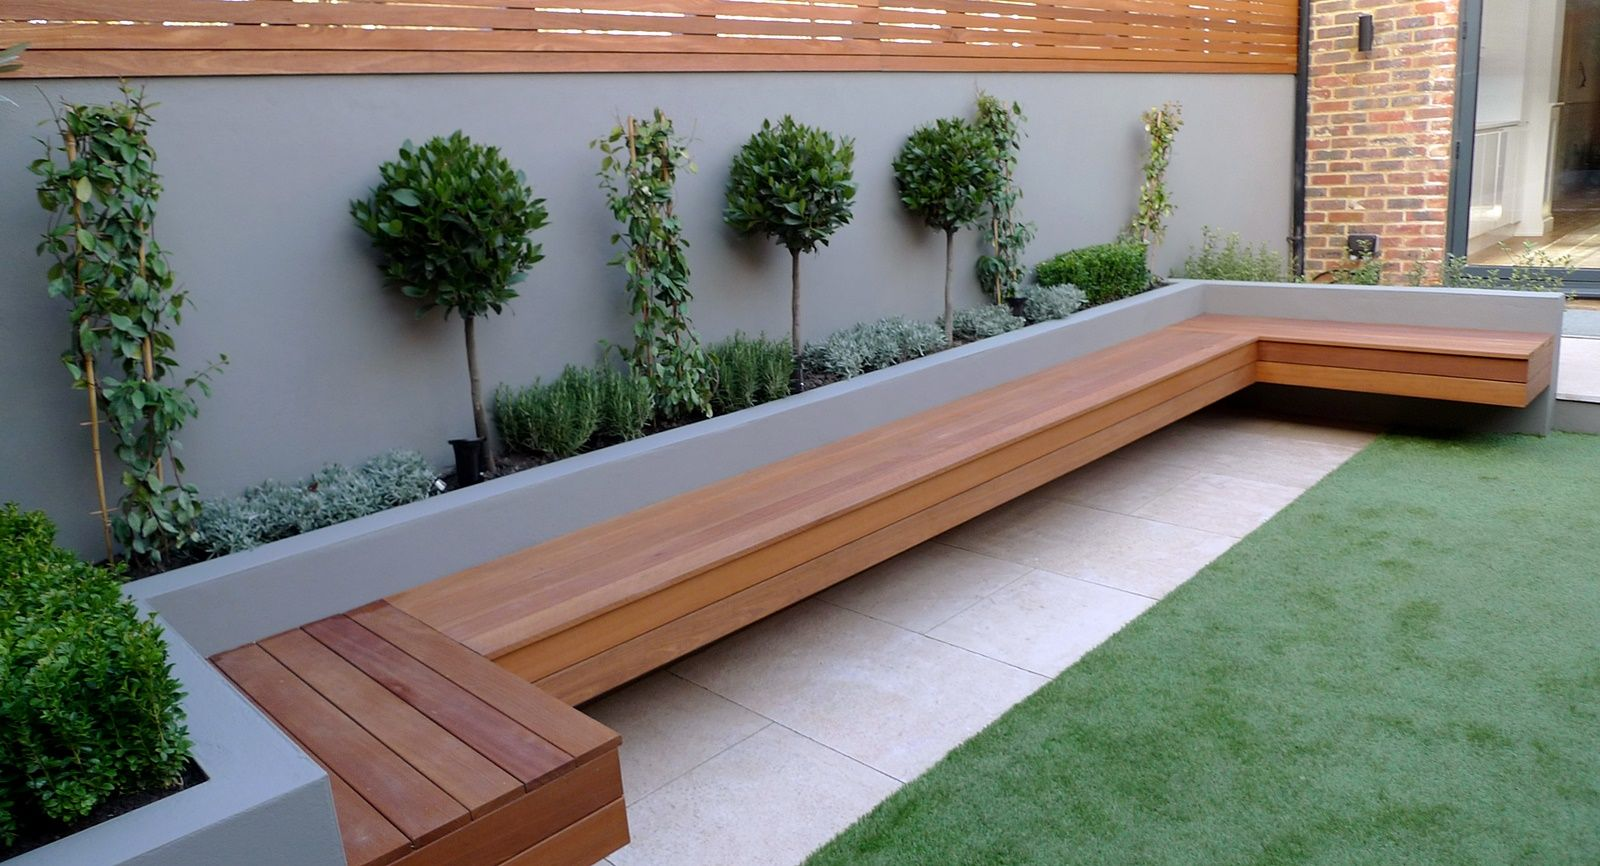 Garden Design Artificial Grass modern garden designer london artificial grass hardwood seat